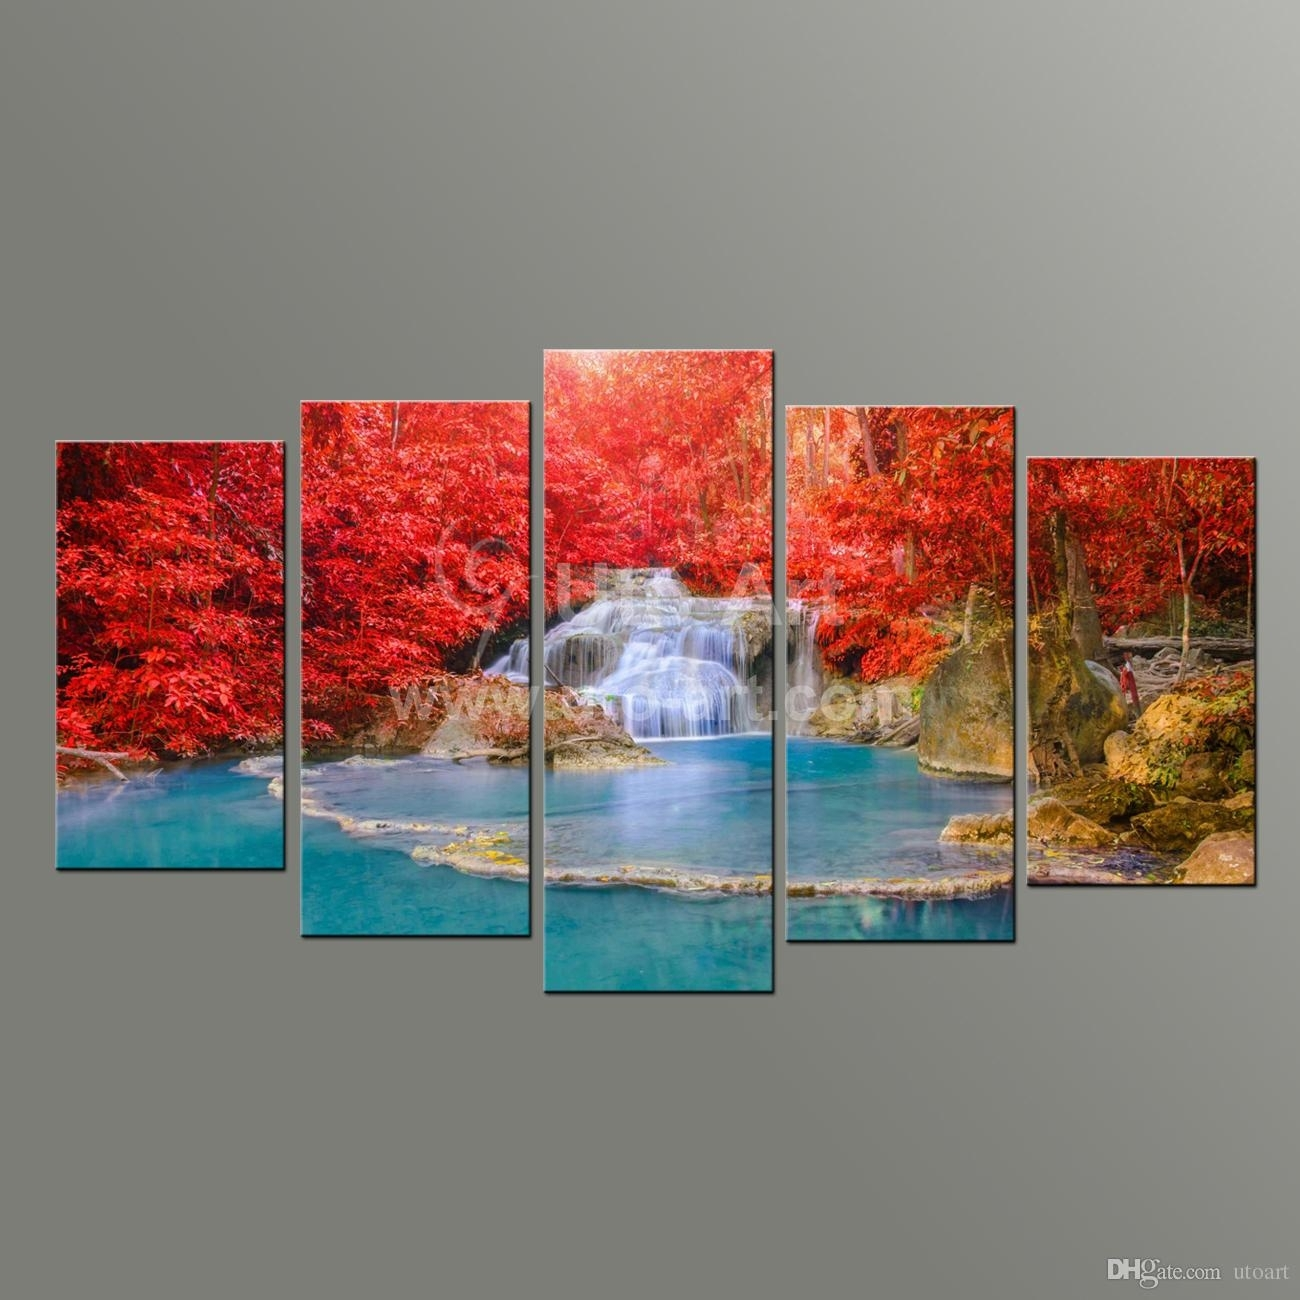 2018 5 Panel Wall Art Paintings Landscaping Waterfall Picture And With Current Wall Art Paintings (Gallery 8 of 20)